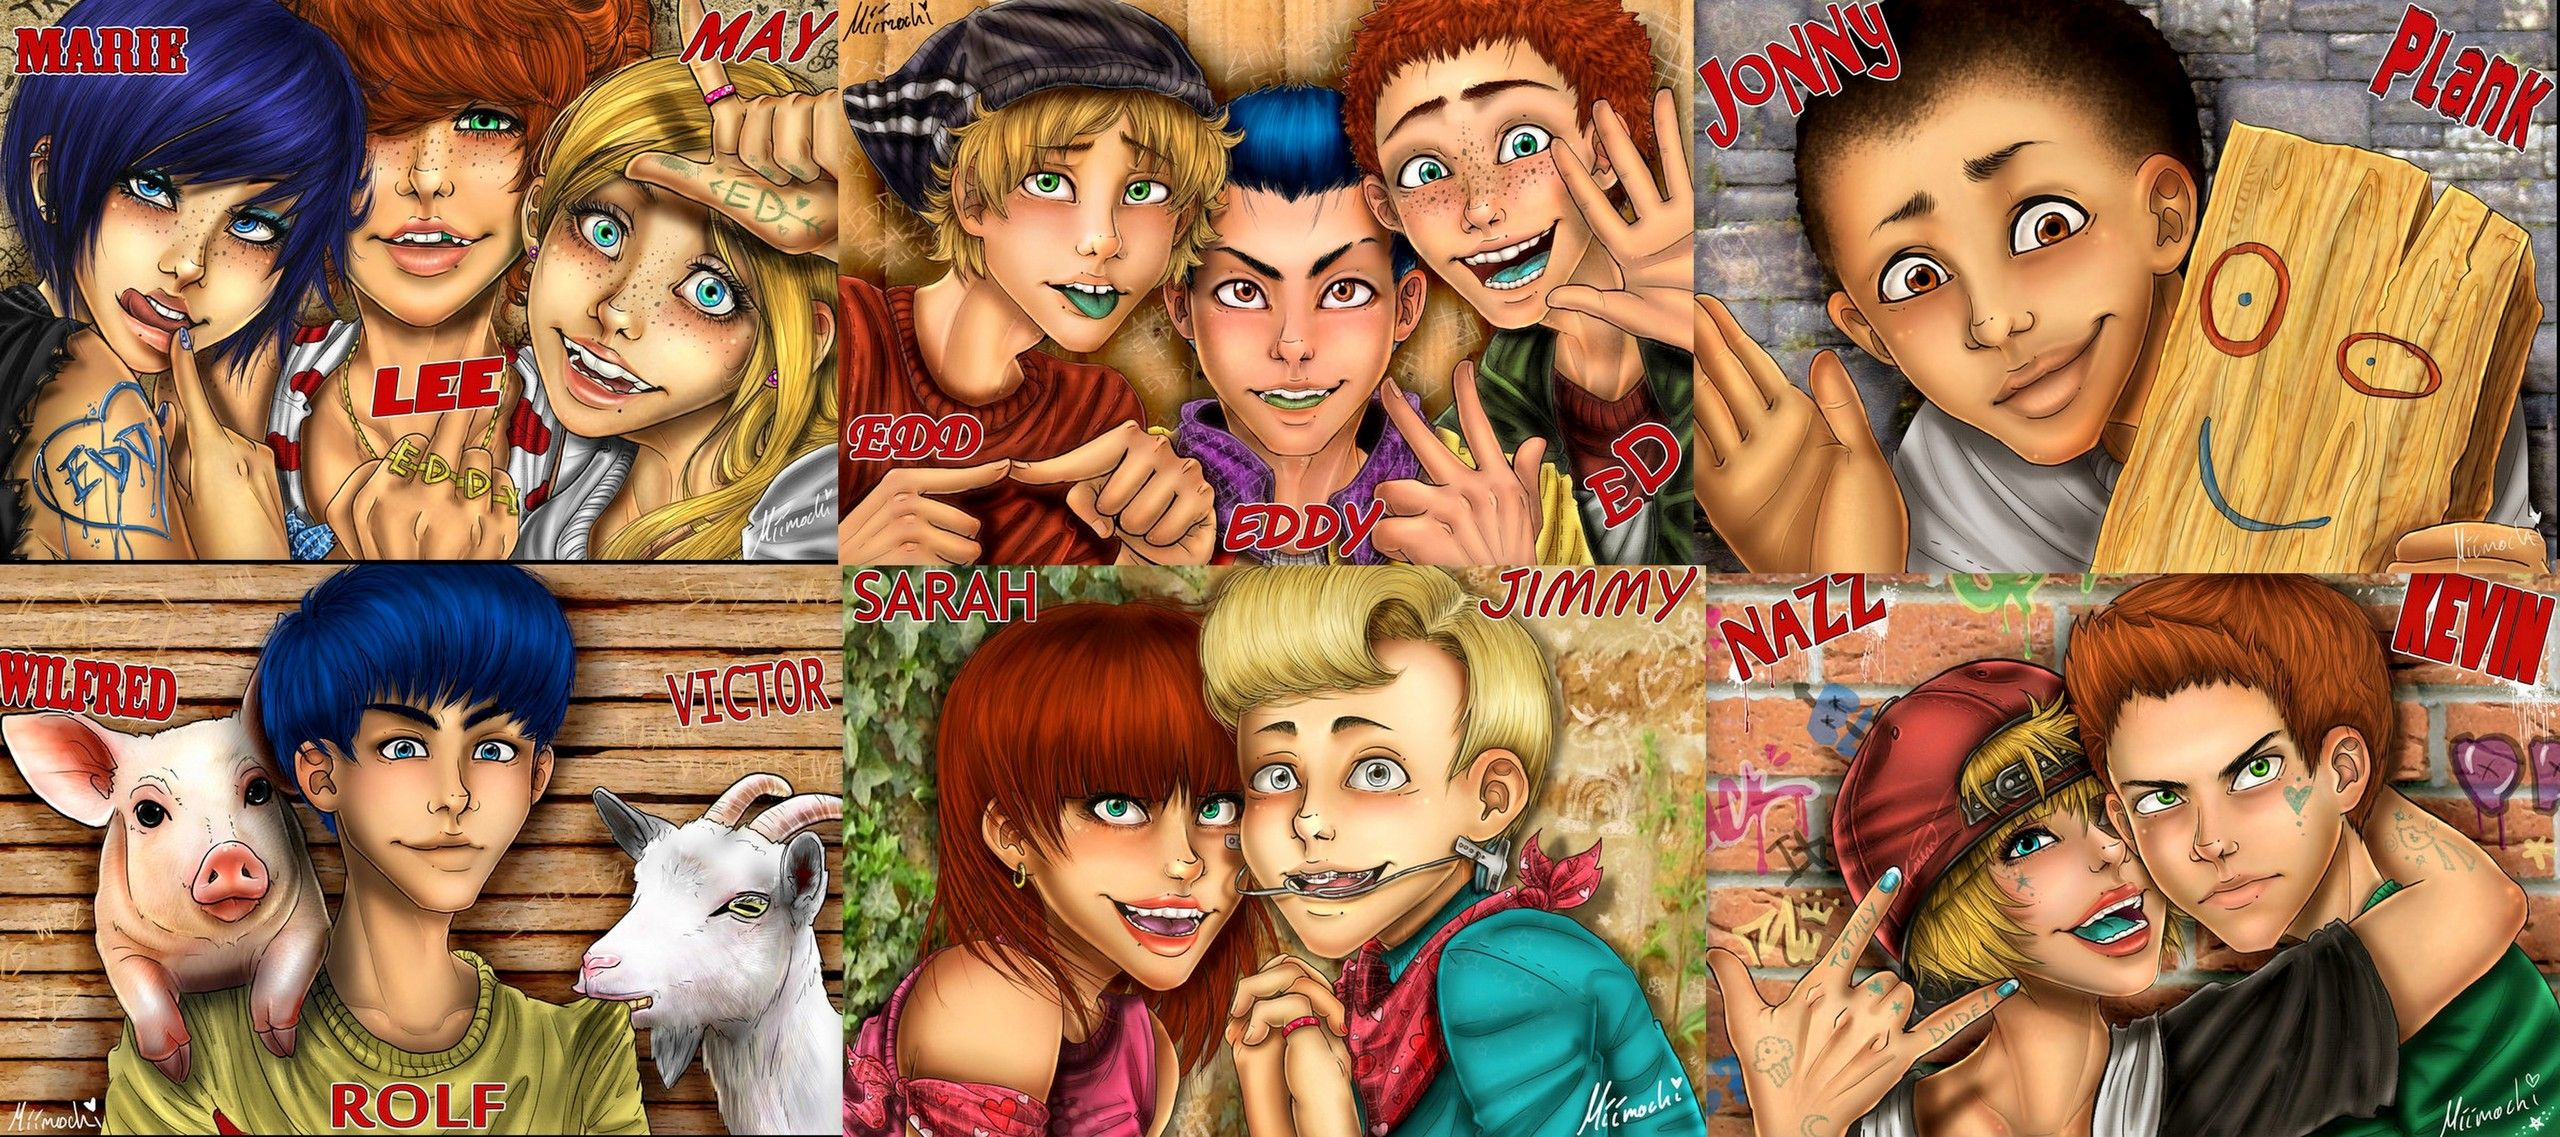 Wow Got To Love Anime Gives A Whole New View Of Ed Edd N Eddy